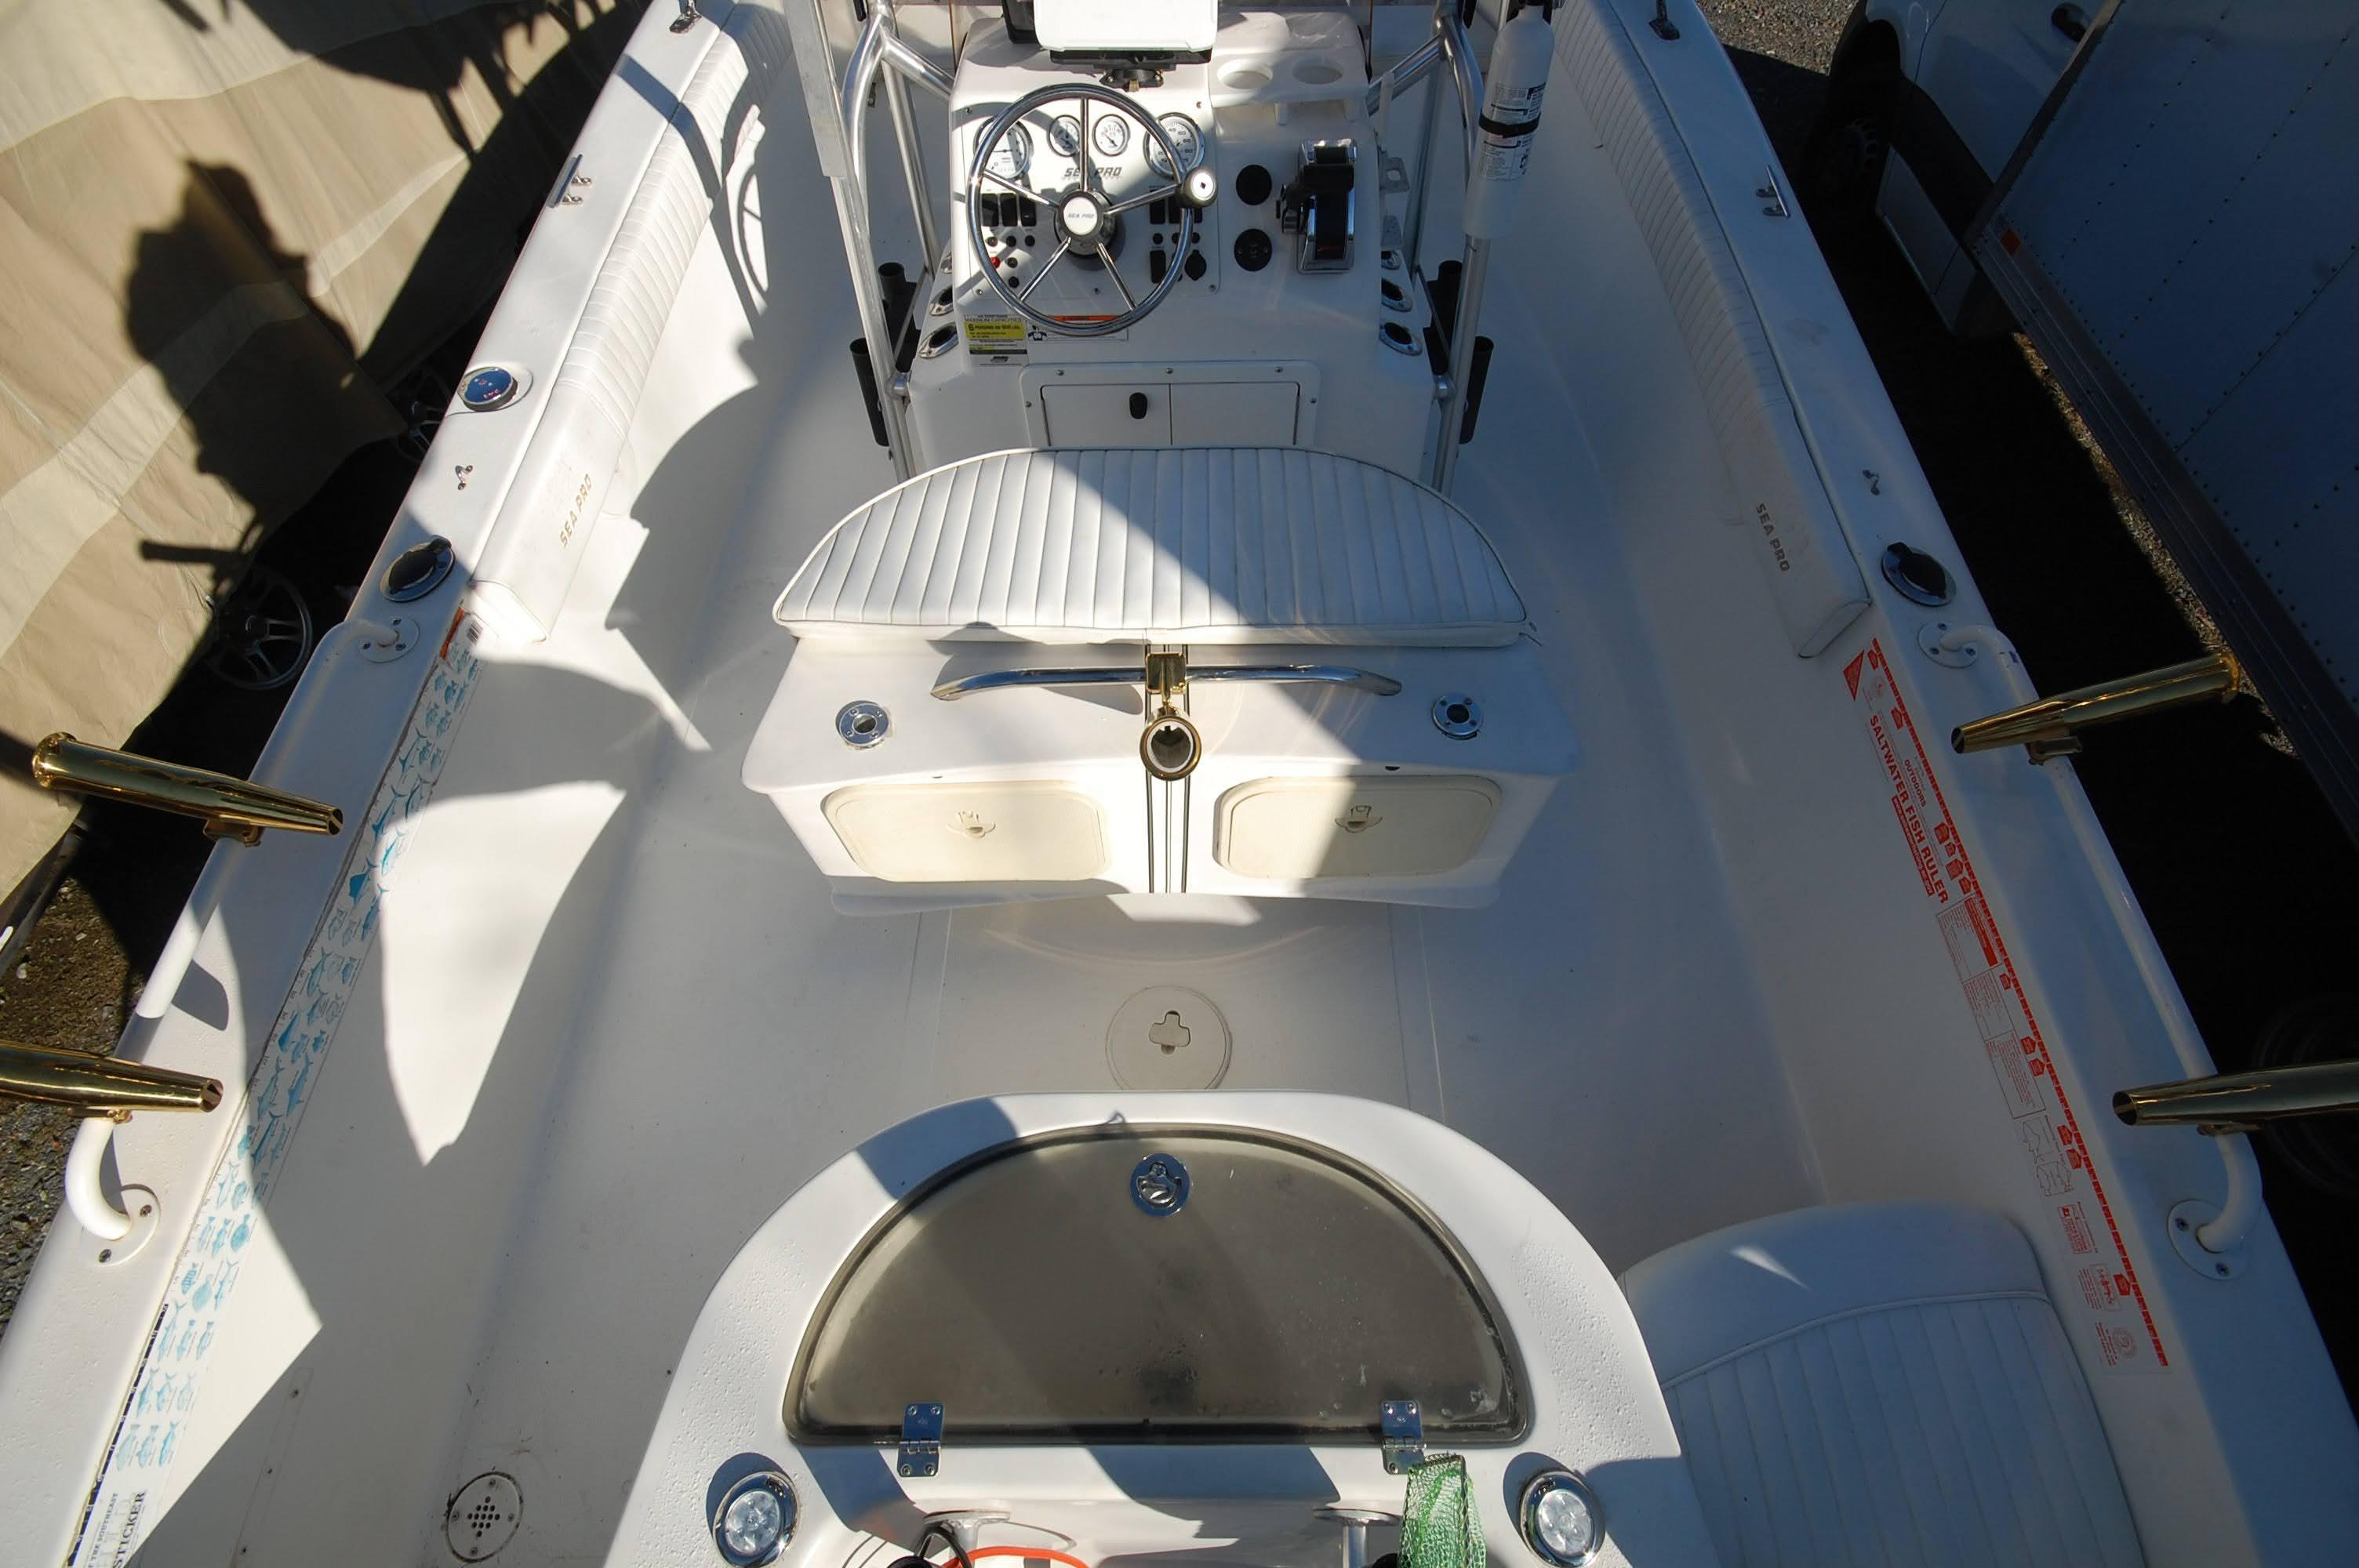 SC 5881 EE Knot 10 Yacht Sales